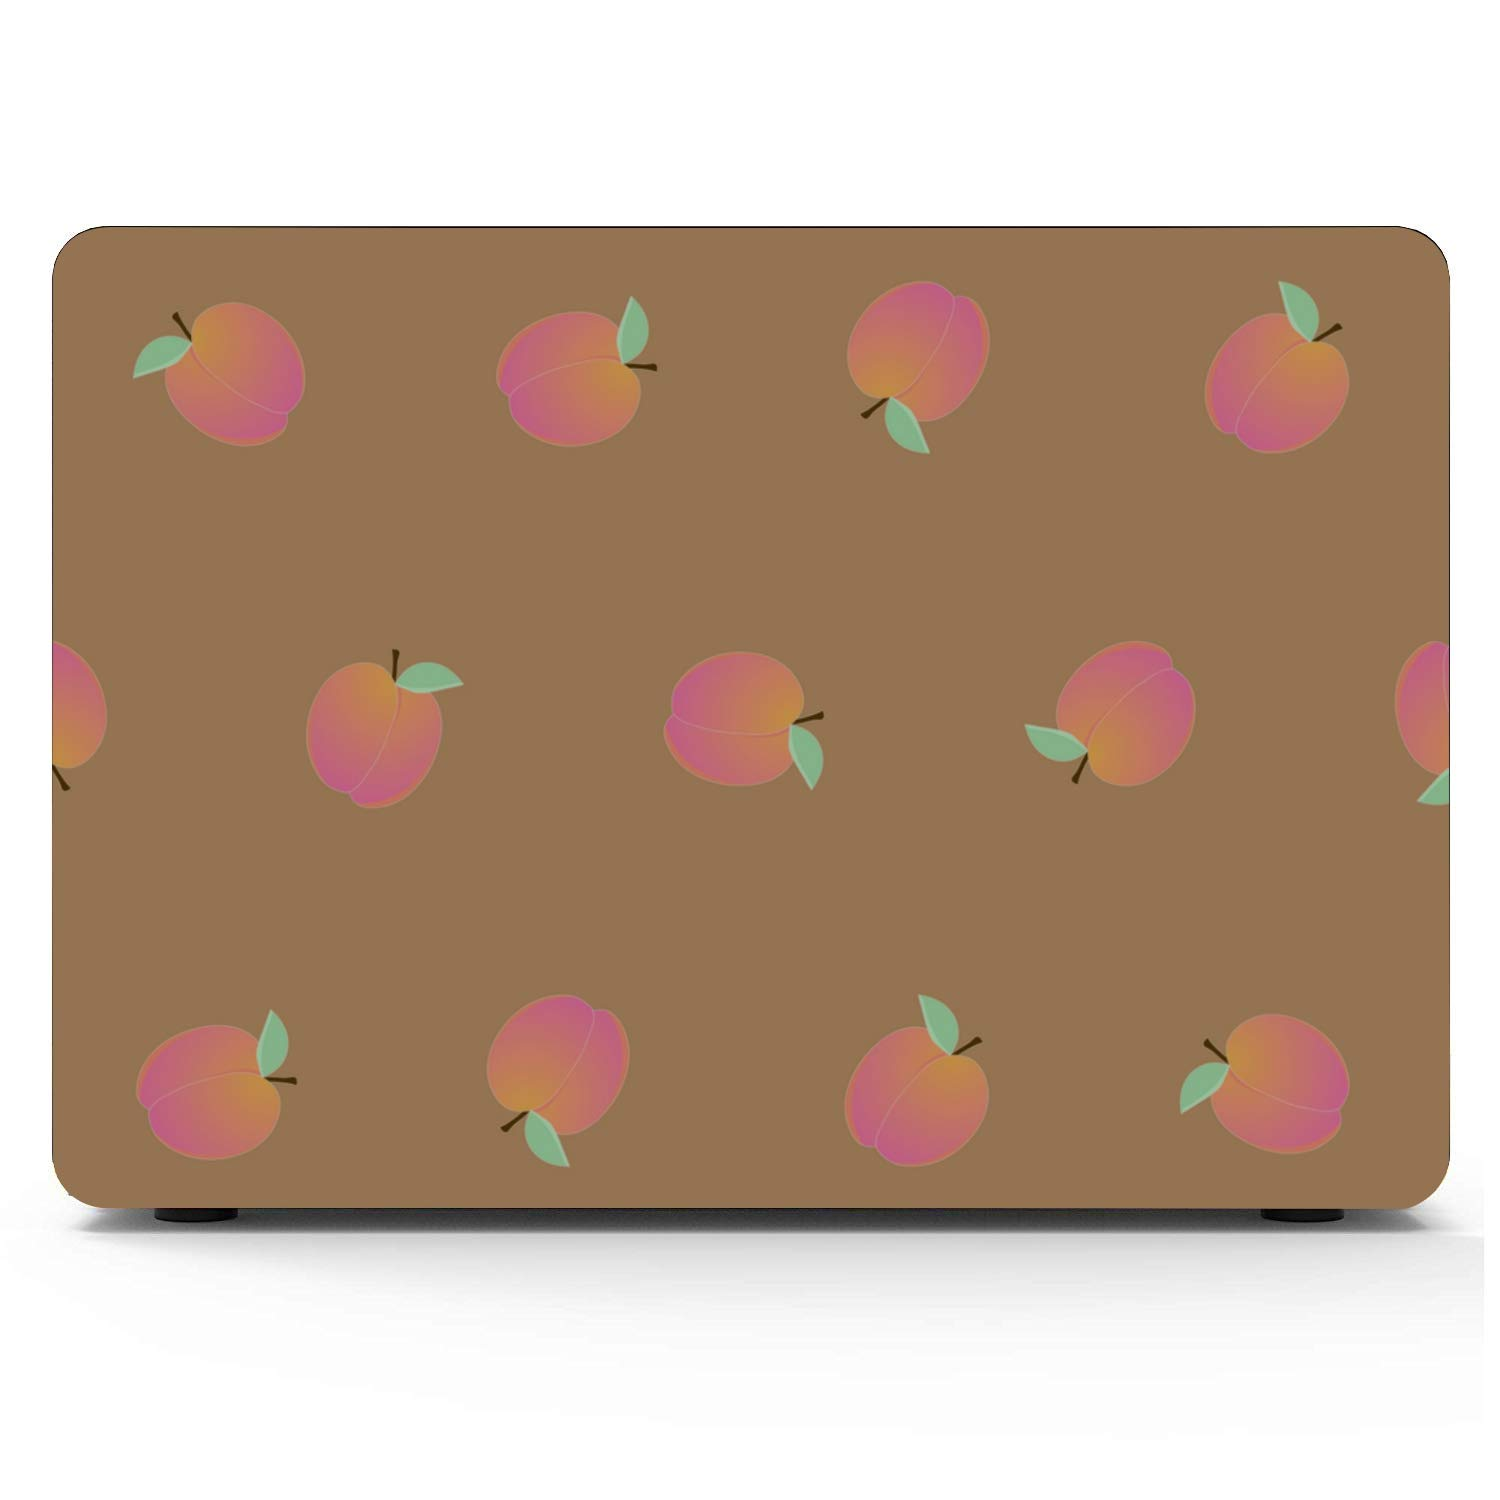 MacBook Cover 15 Inch Summer Pink Creative Fruit Peach Plastic Hard Shell Compatible Mac Air 11 Pro 13 15 MacBook 13 Inch Case Protection for MacBook 2016-2019 Version